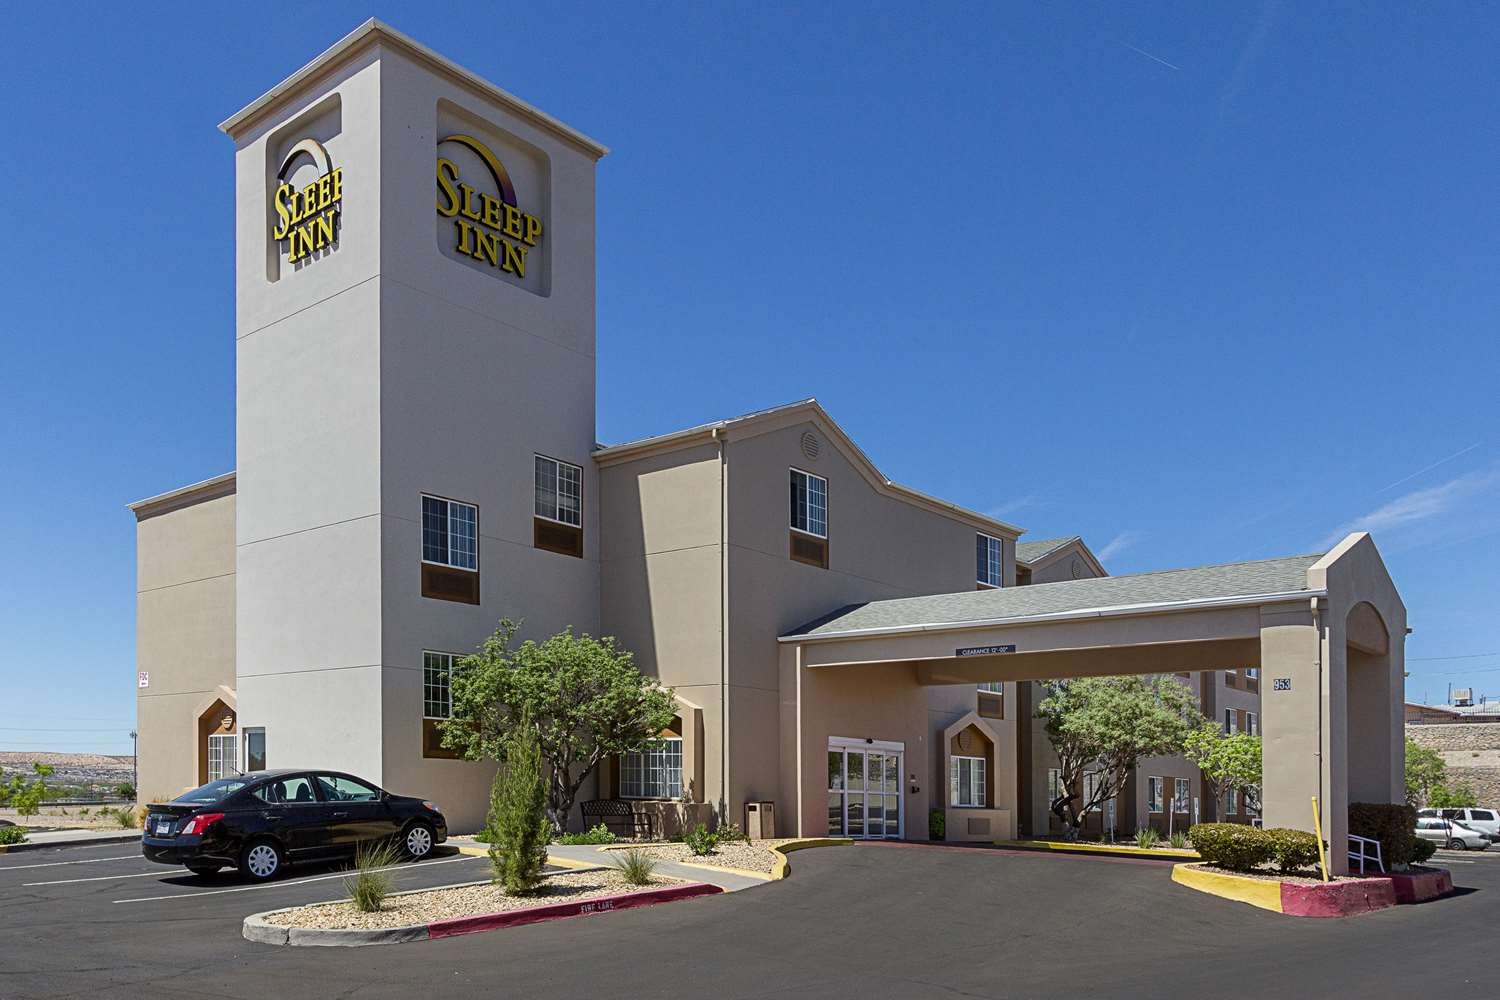 Sleep Inn University El Paso